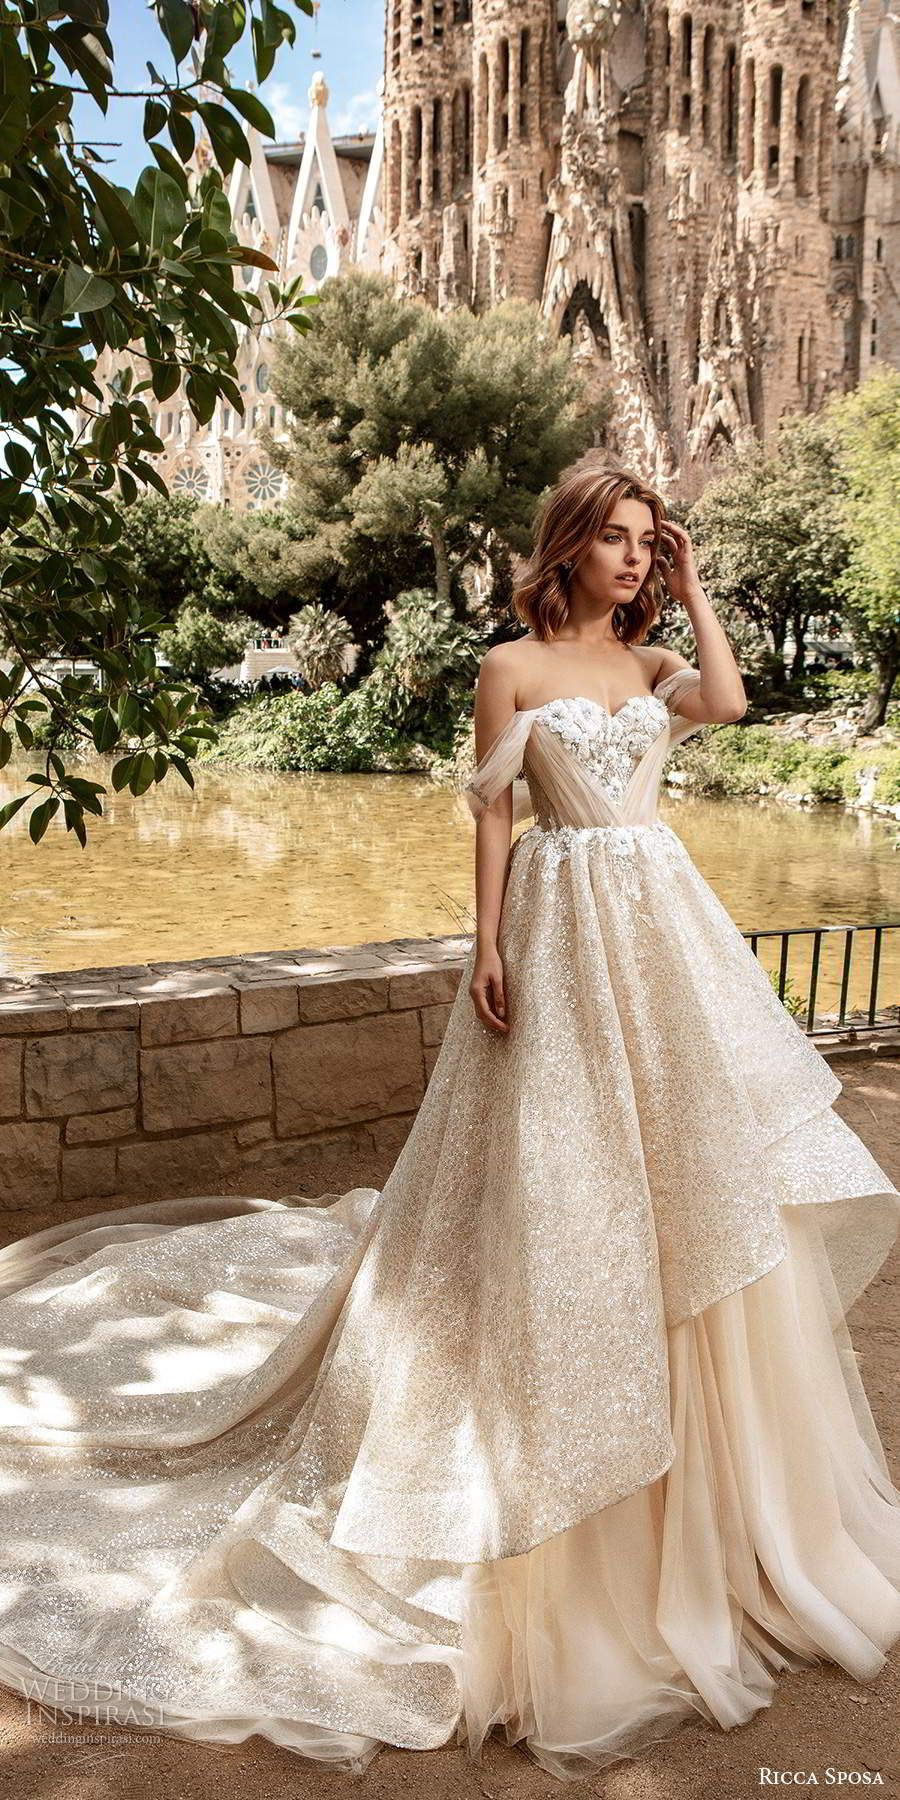 20 Bridal Collections You Loved This Year — Gorgeous Wedding Dresses Ahead | Wedding Inspirasi